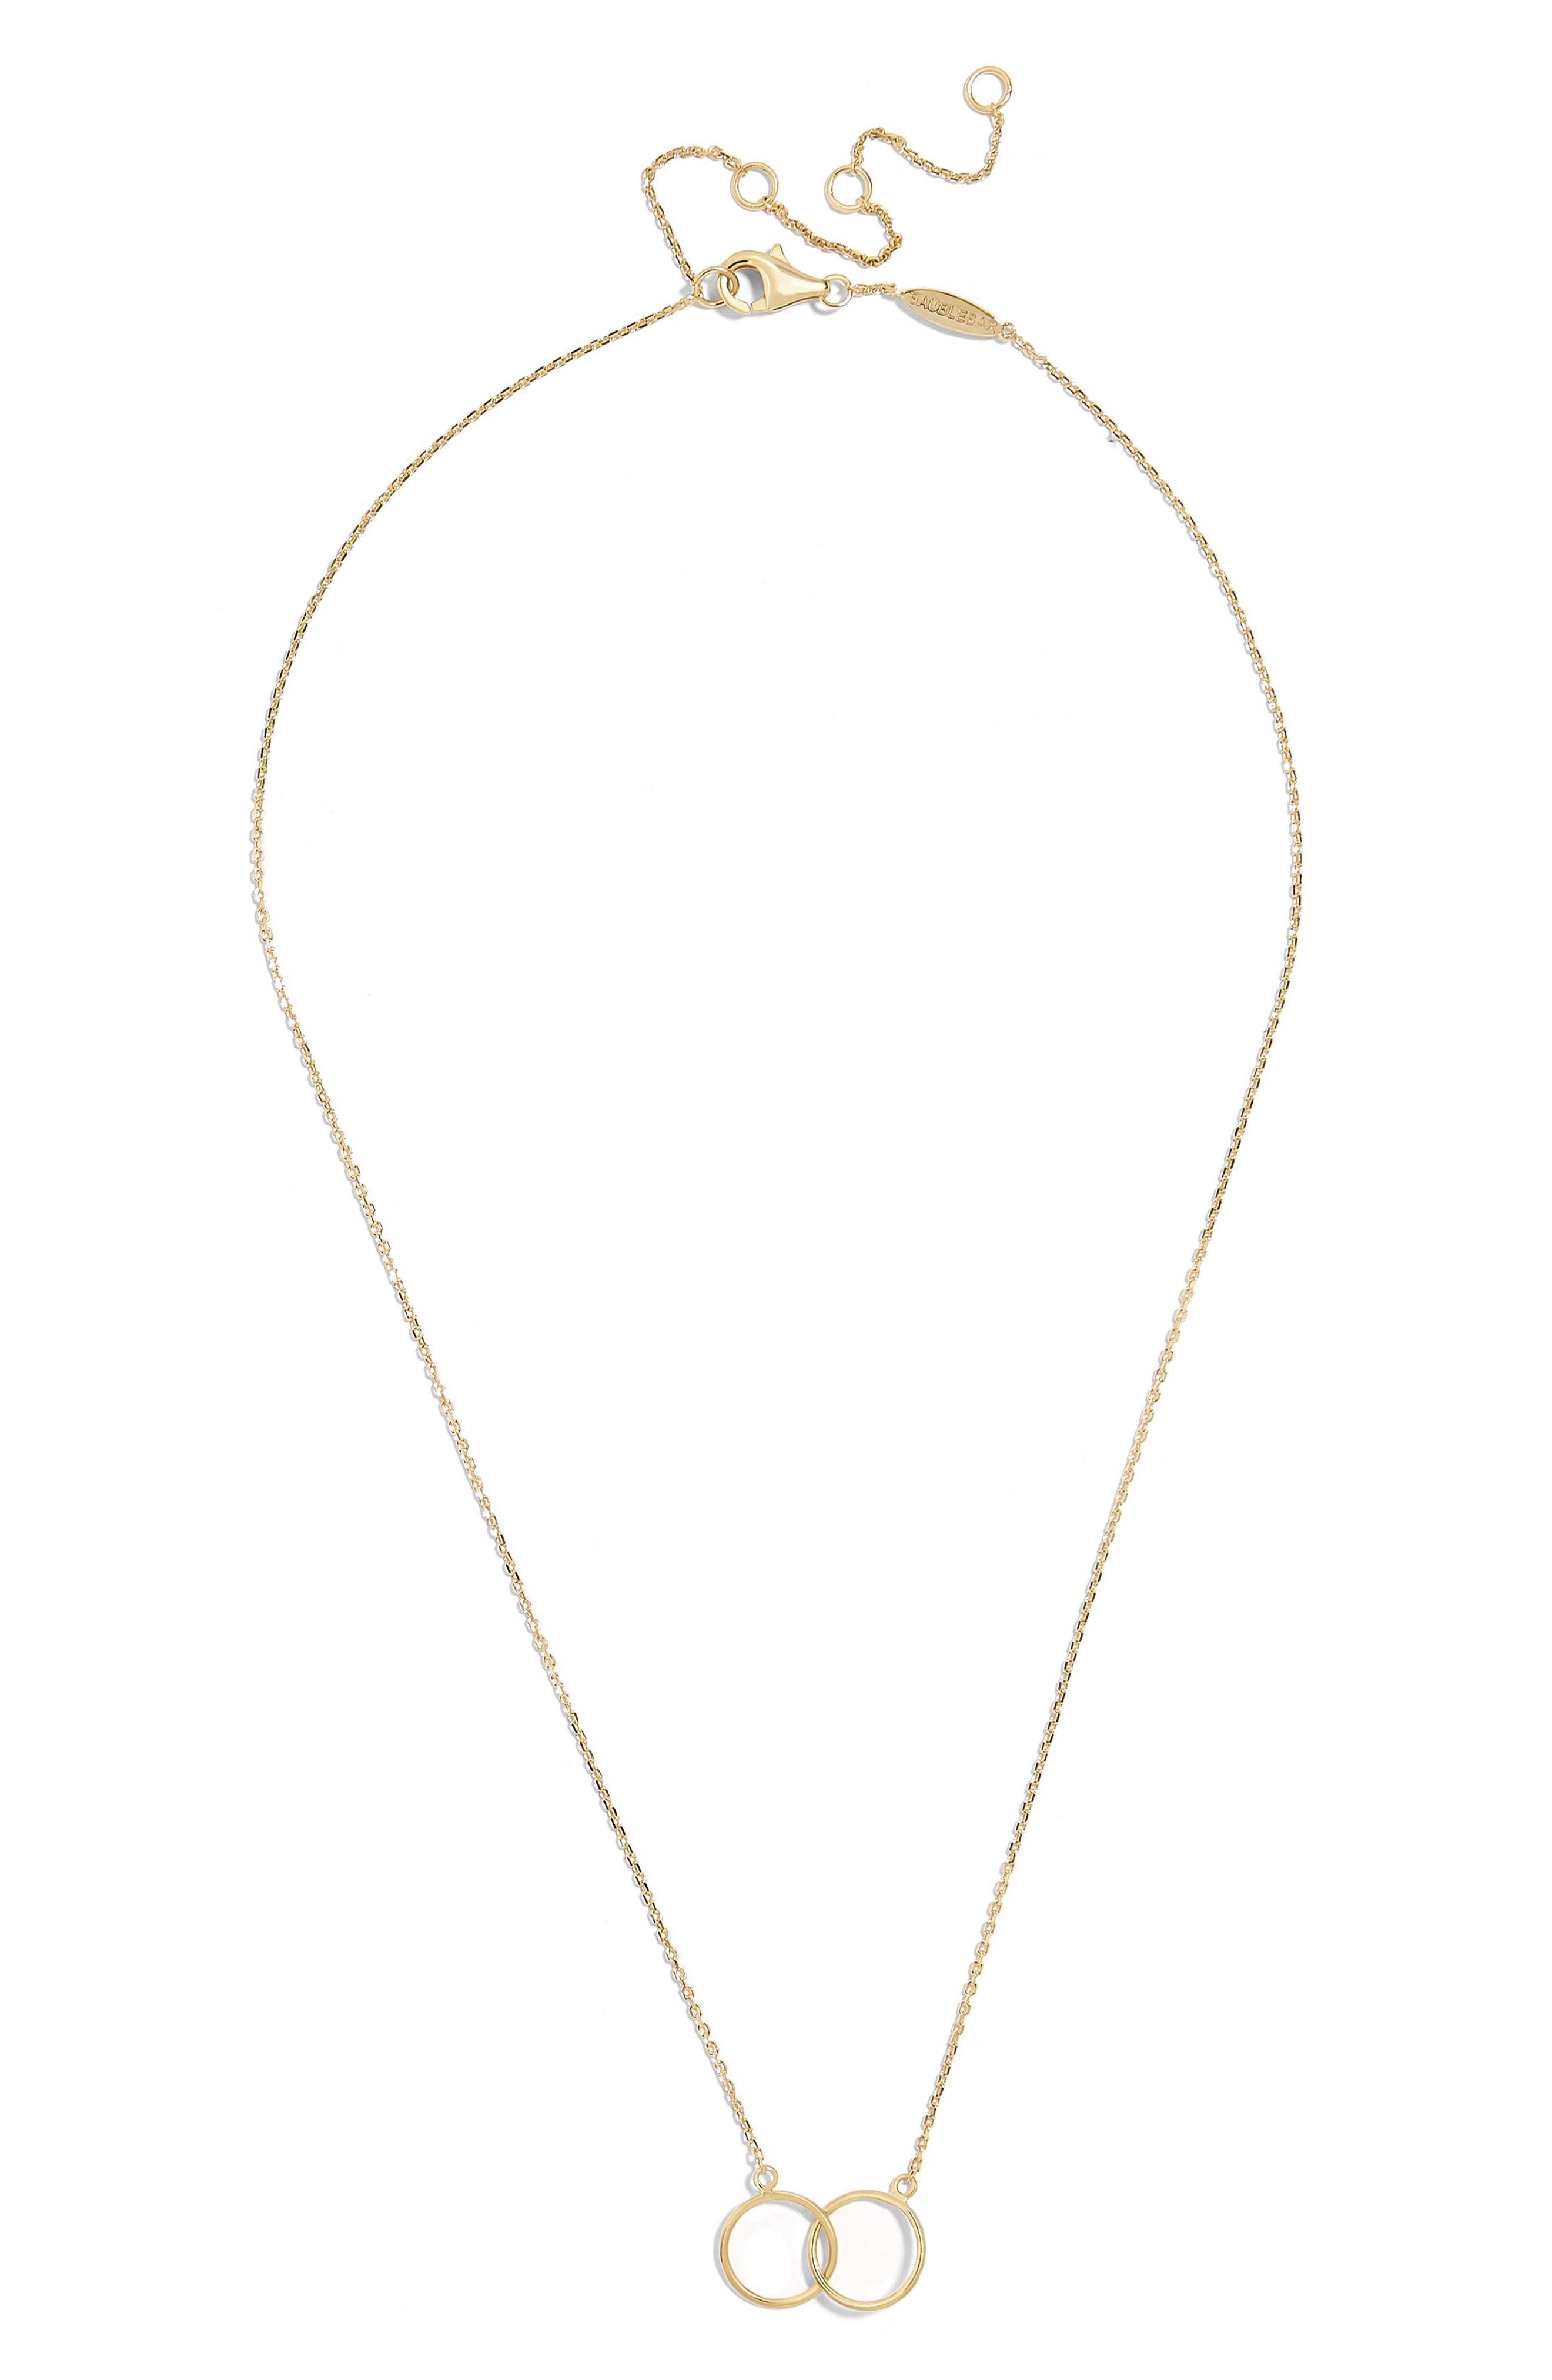 Main Image - BaubleBar Connesso Everyday Fine Pendant Necklace